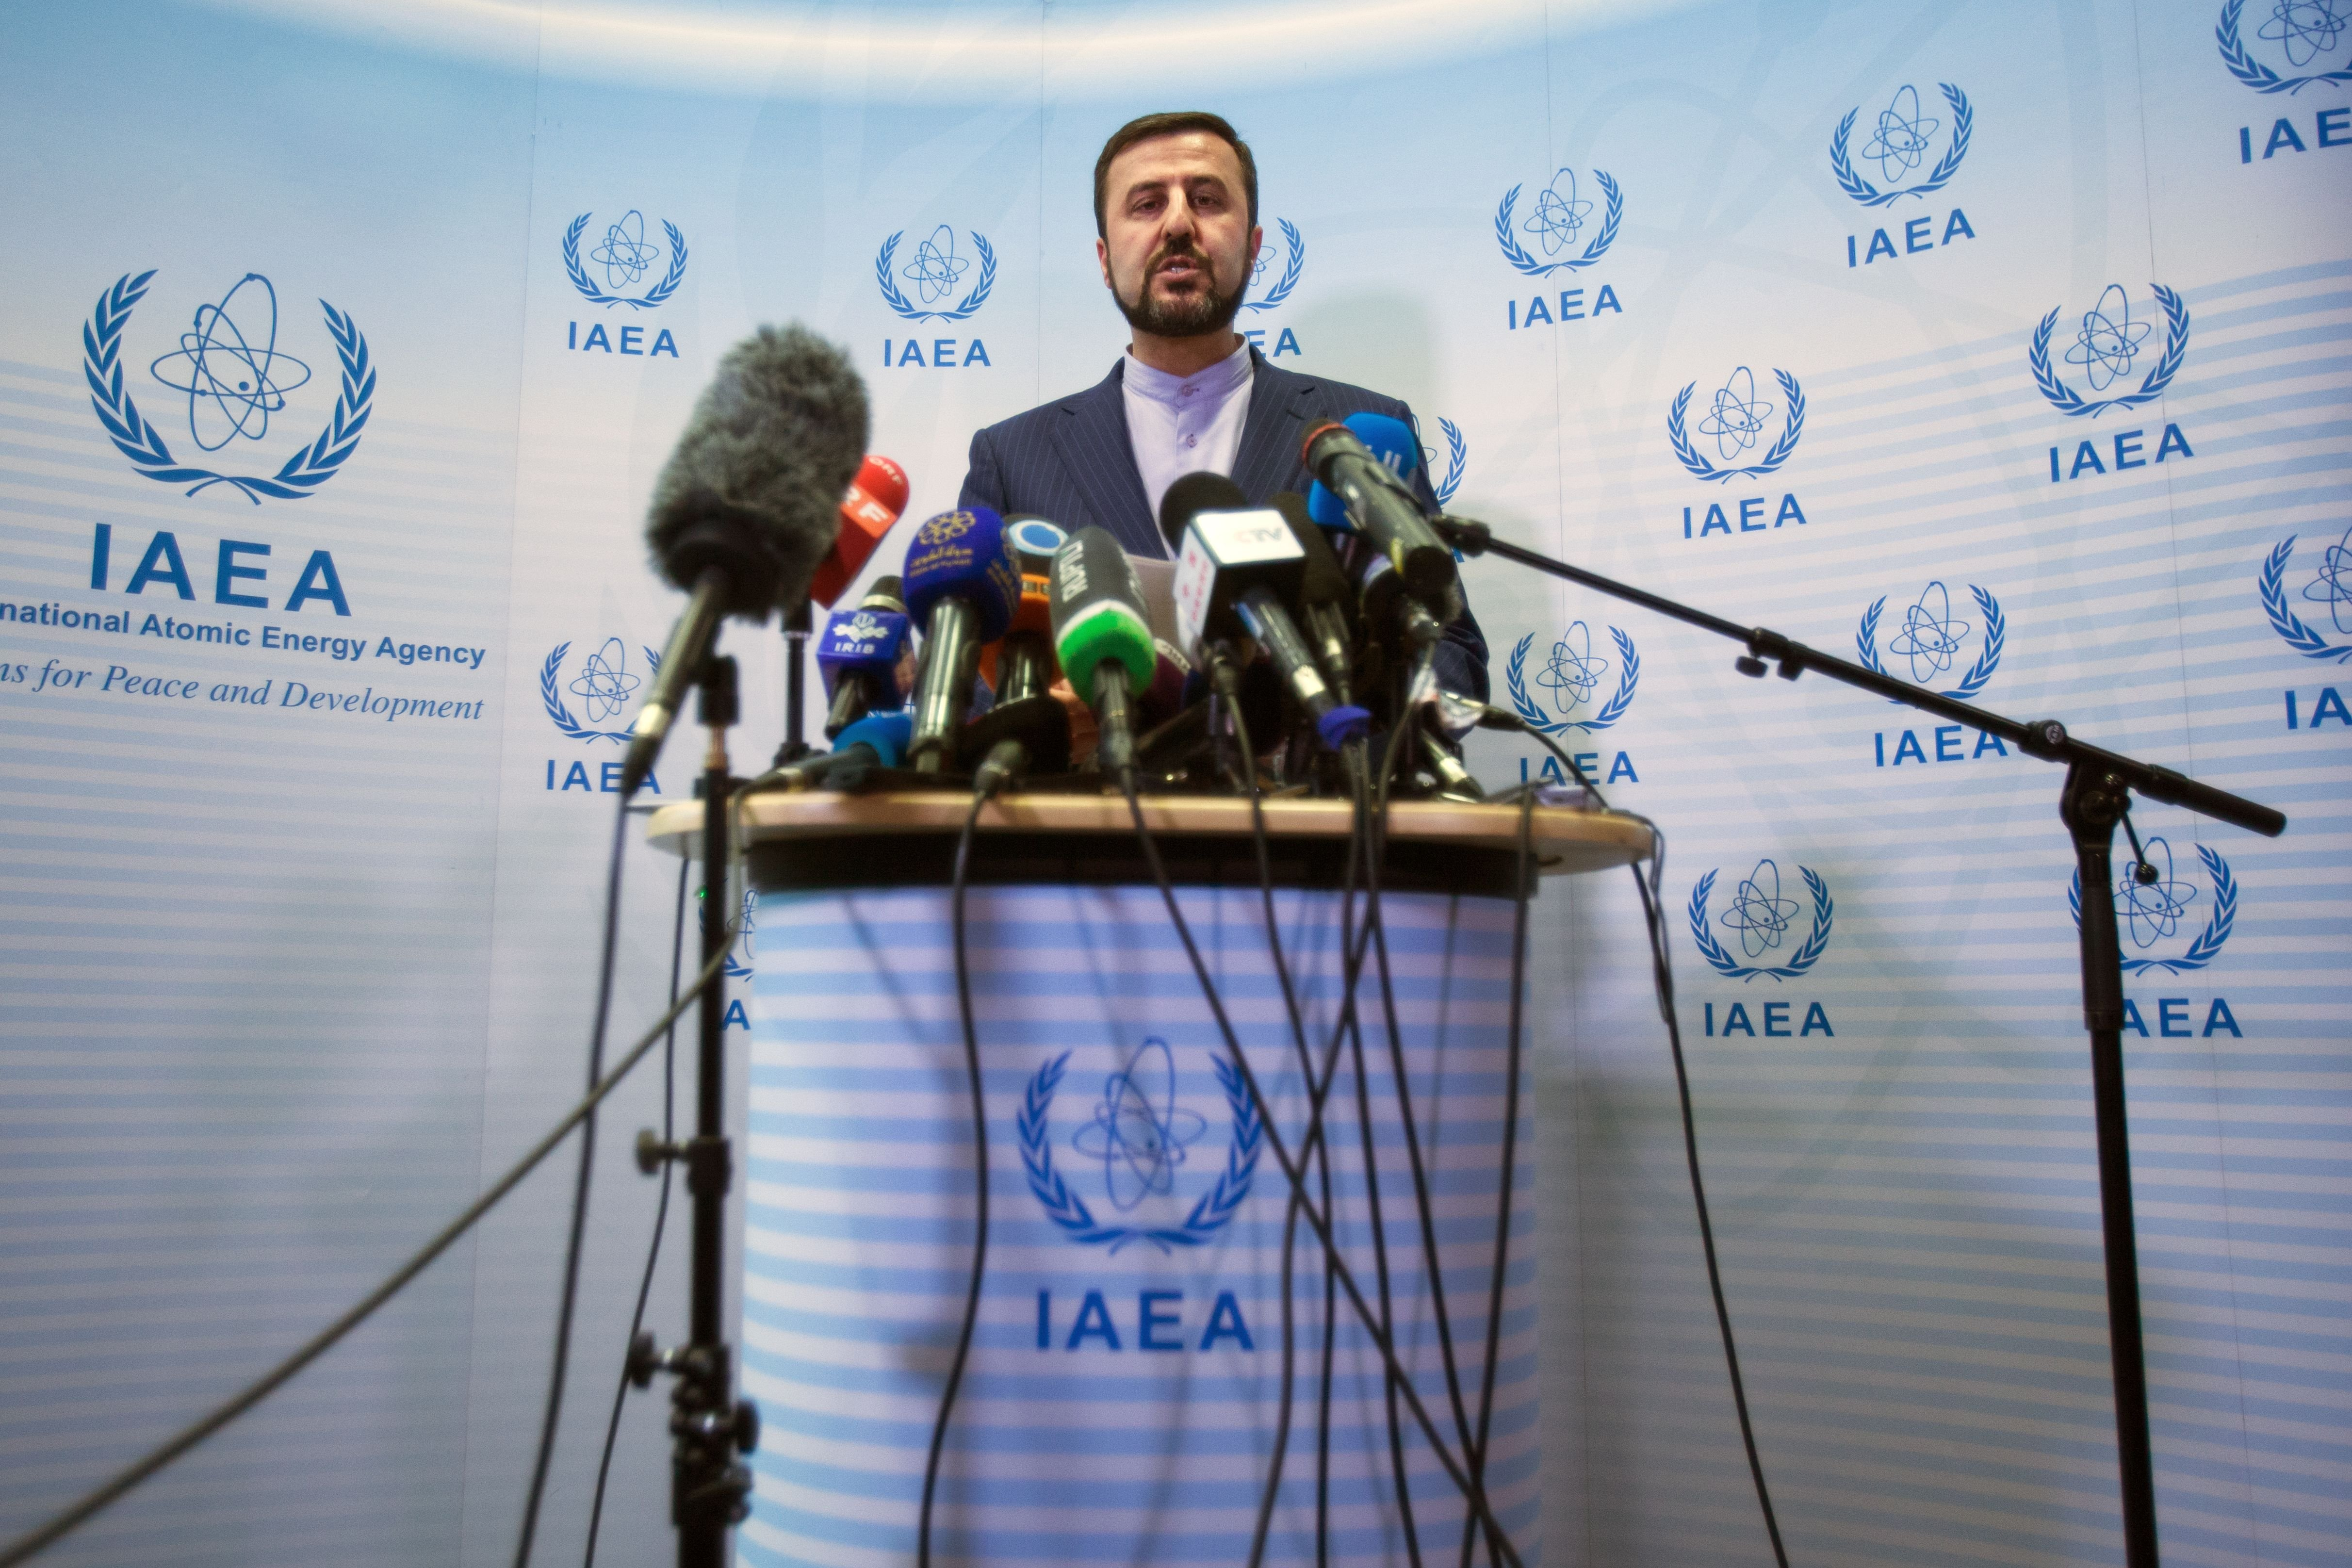 Iran's Permanent Representative to the United Nations Kazem Gharib Abadi give a press conference after the International Atomic Energy Agency (IAEA) Board of Governors meeting in Vienna on July 10, 2019. (ALEX HALADA/AFP/Getty Images)